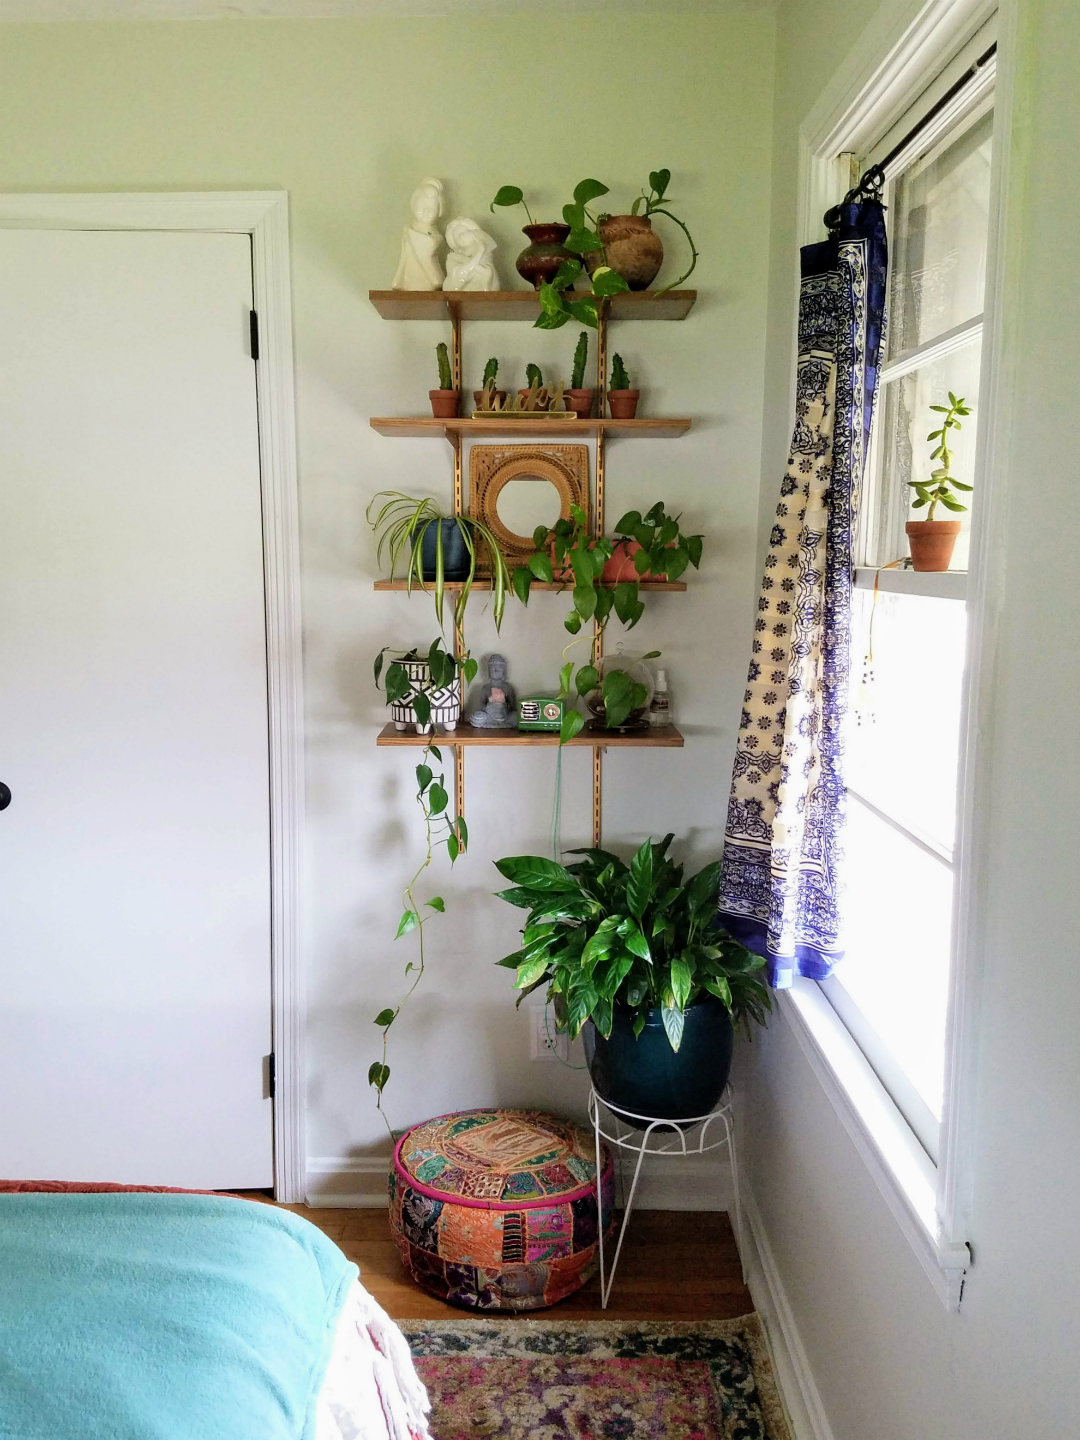 A small awkward corner of the bedroom gets turned into a decorative plant shelf - Design By TheBohoAbode